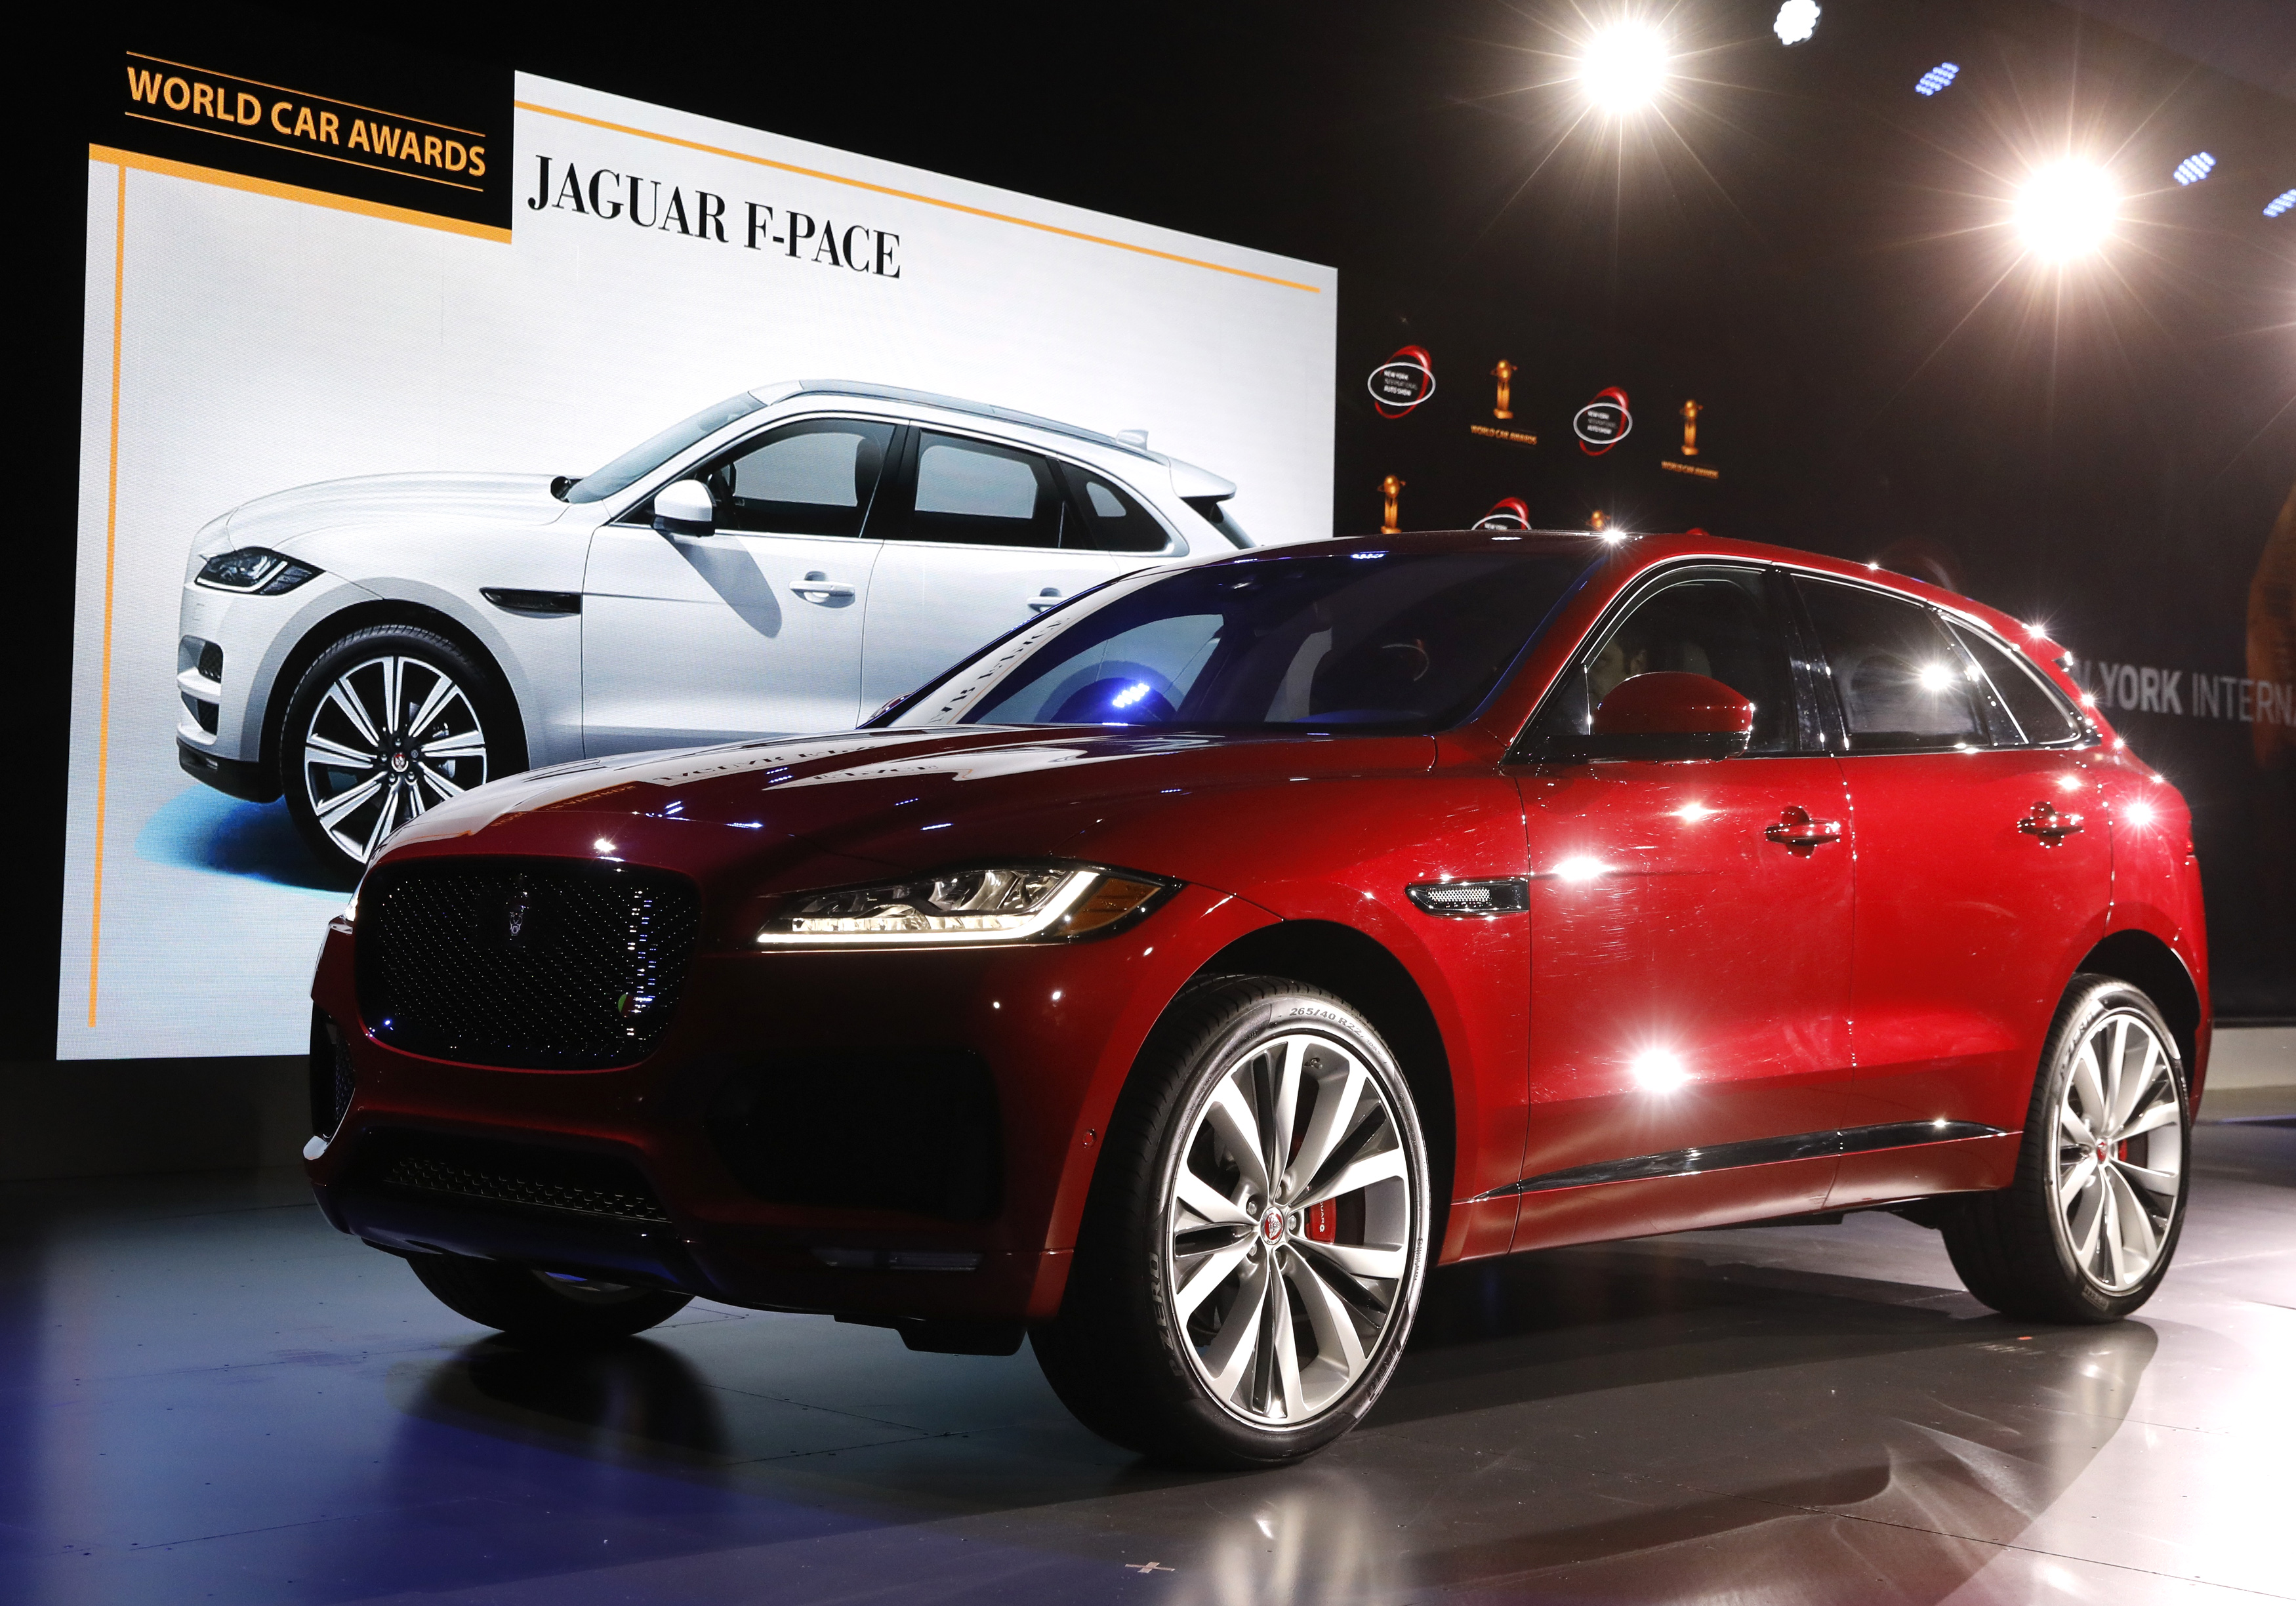 The Jaguar F-Pace is displayed at the 2017 New York International Auto Show in New York